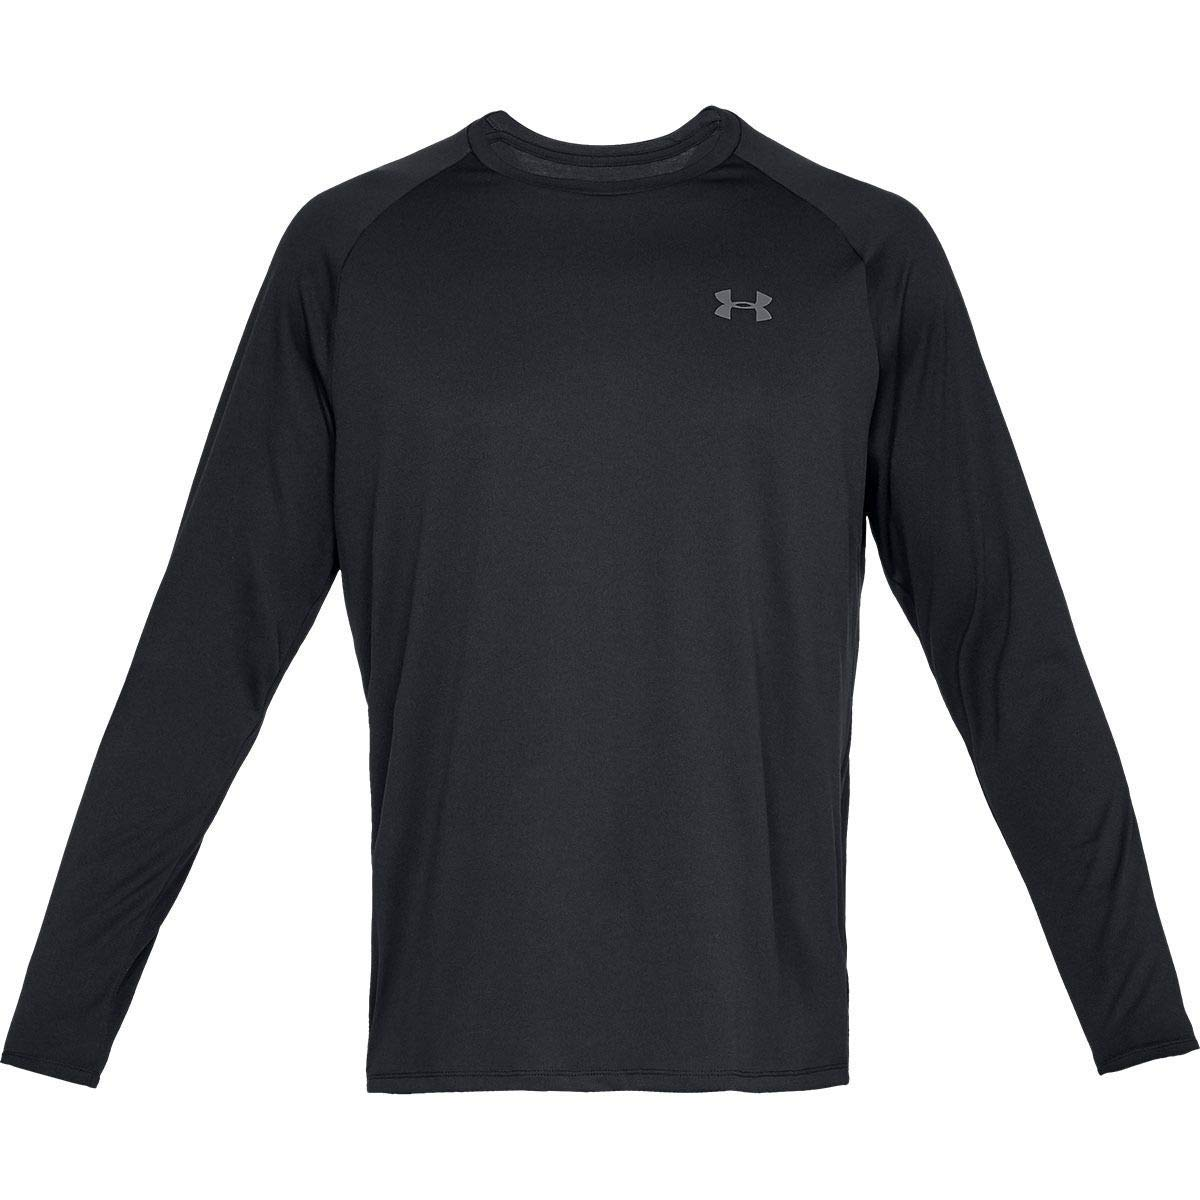 Under Armour Tech 2.0 Long-Sleeve Shirt - Men's Black/Graphite, XS by Under Armour